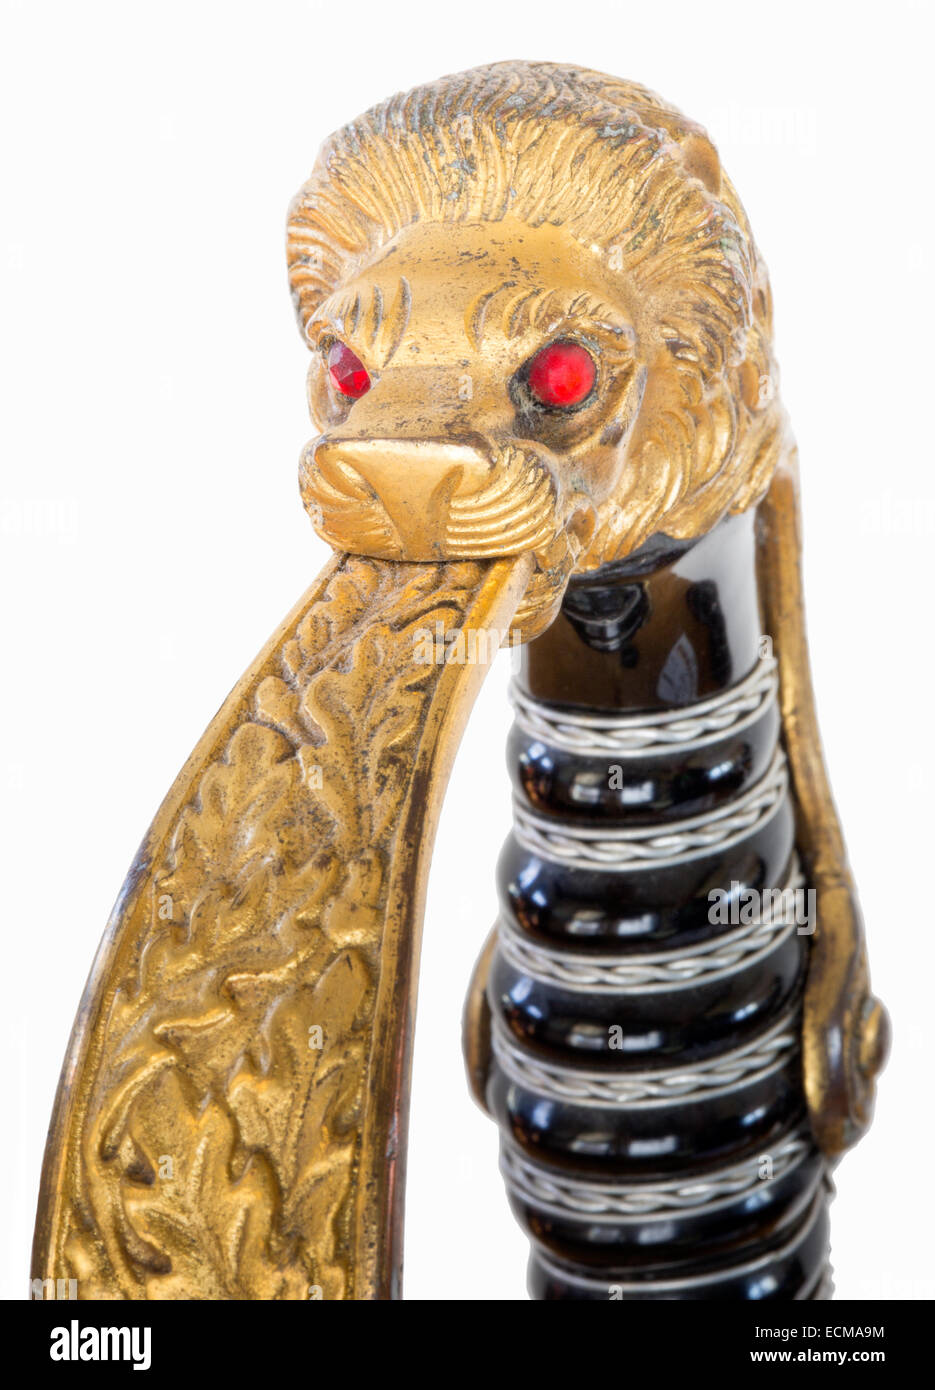 Close up detail of a 1940s WWII Nazi military army dress sword with a lion's head pommel with red glass eyes - Stock Image